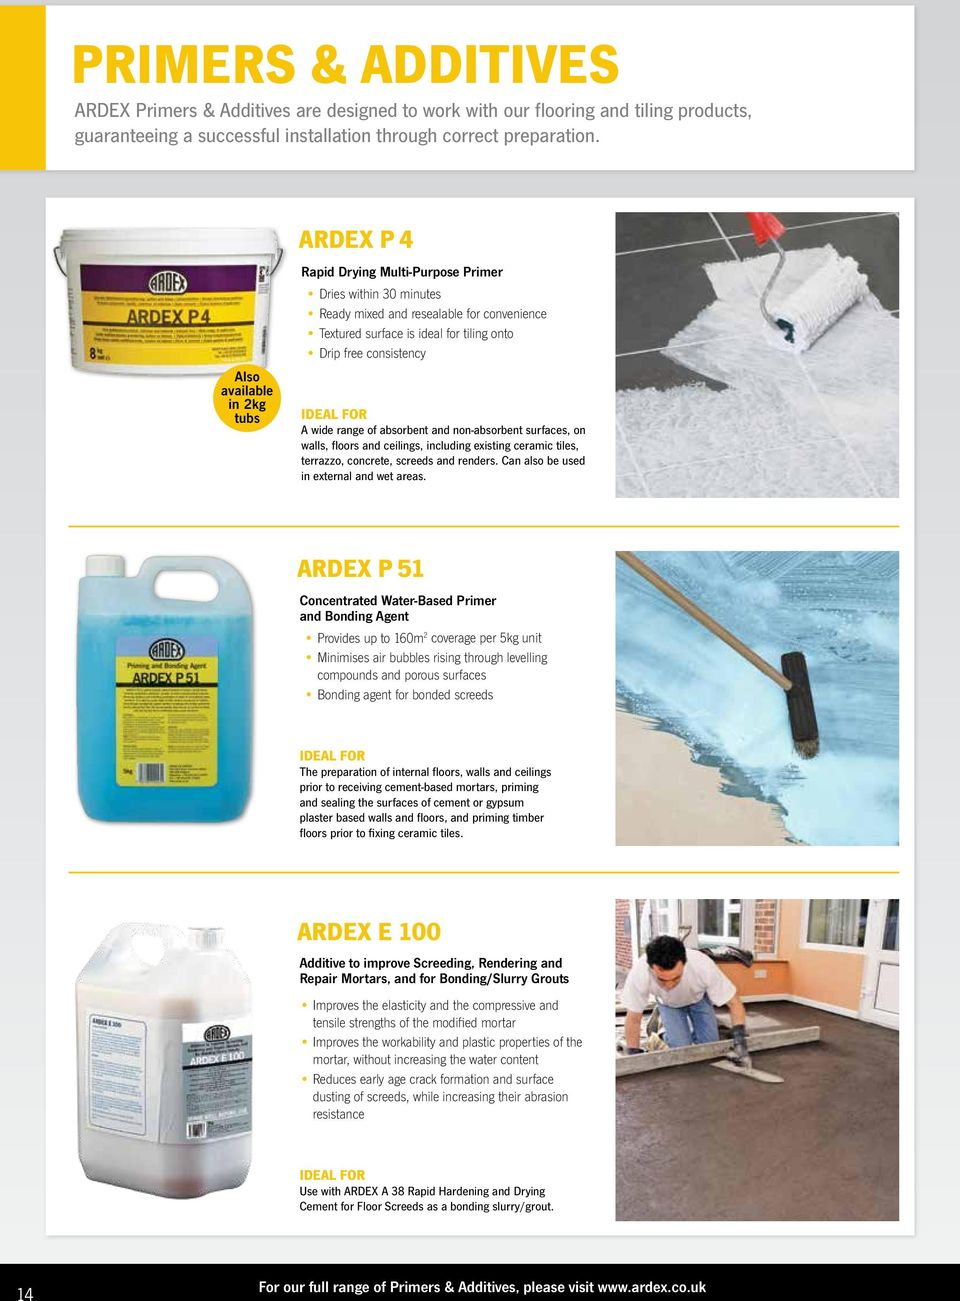 consistency IDEal for A wide range of absorbent and non-absorbent surfaces, on walls, floors and ceilings, including existing ceramic tiles, terrazzo, concrete, screeds and renders.